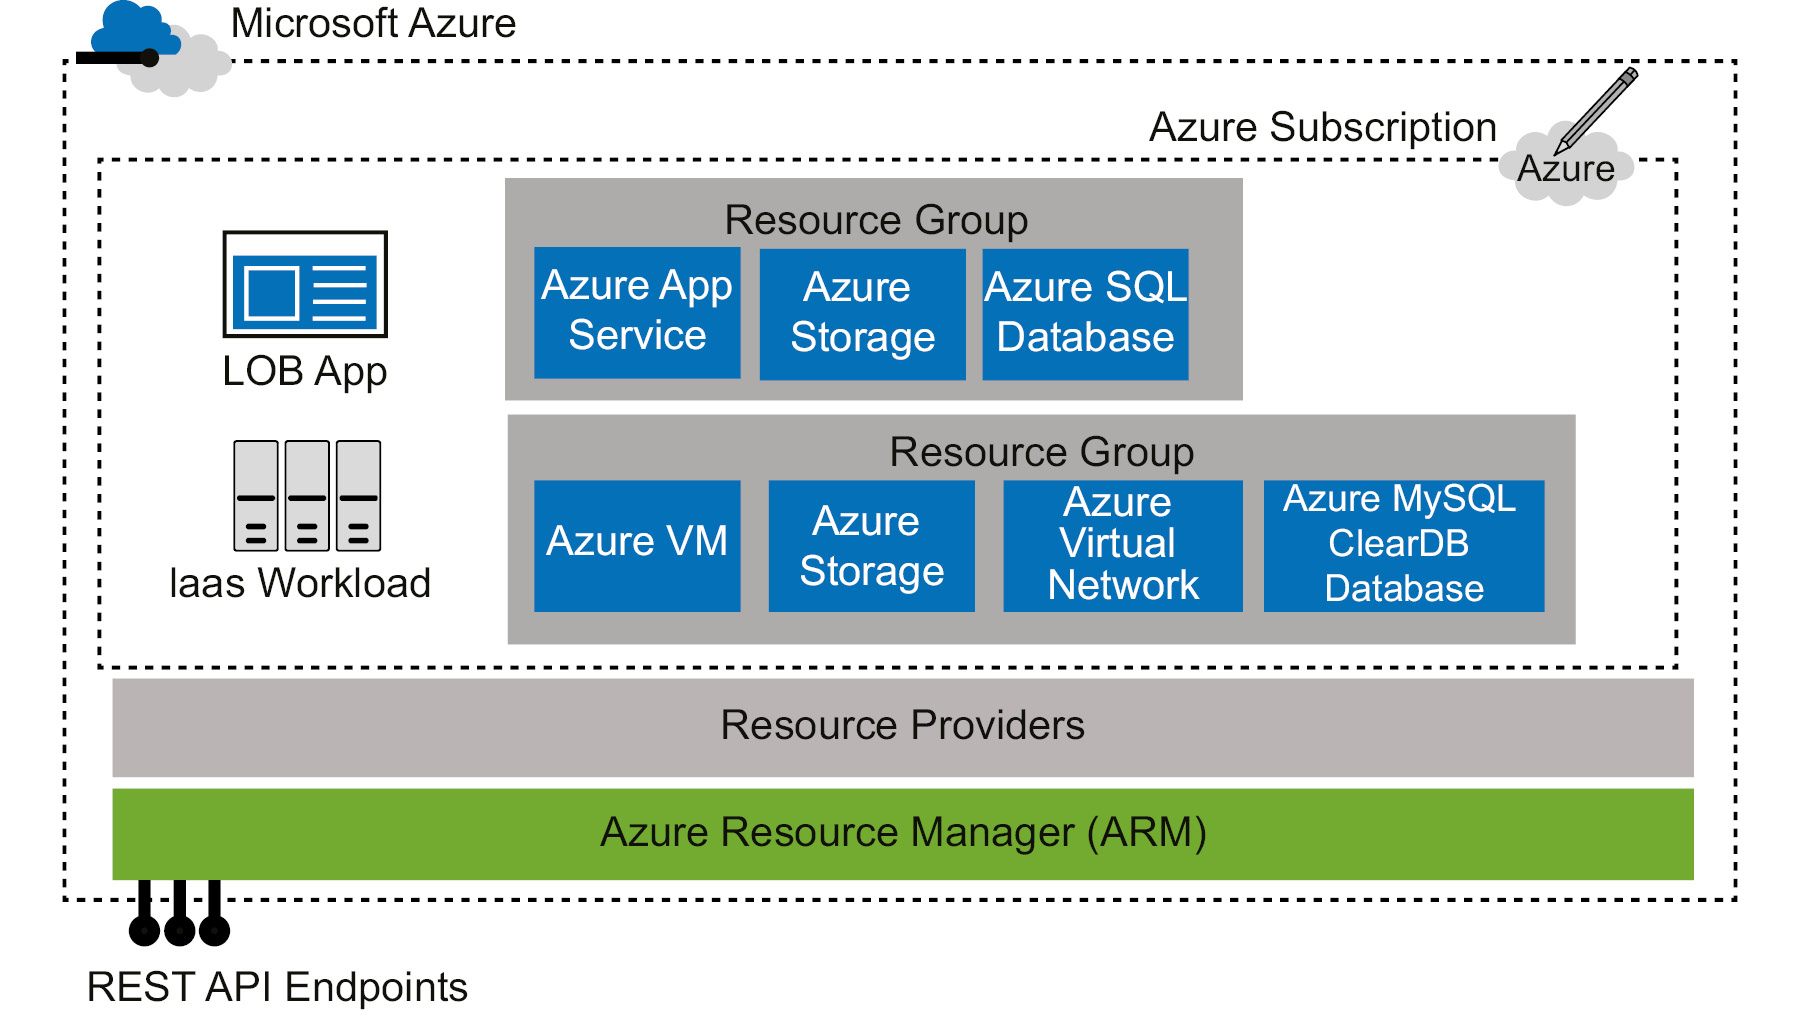 The ARM architecture consisting of different components, such as Resource Groups, Resource Providers, Azure Resource Manager, and so on.